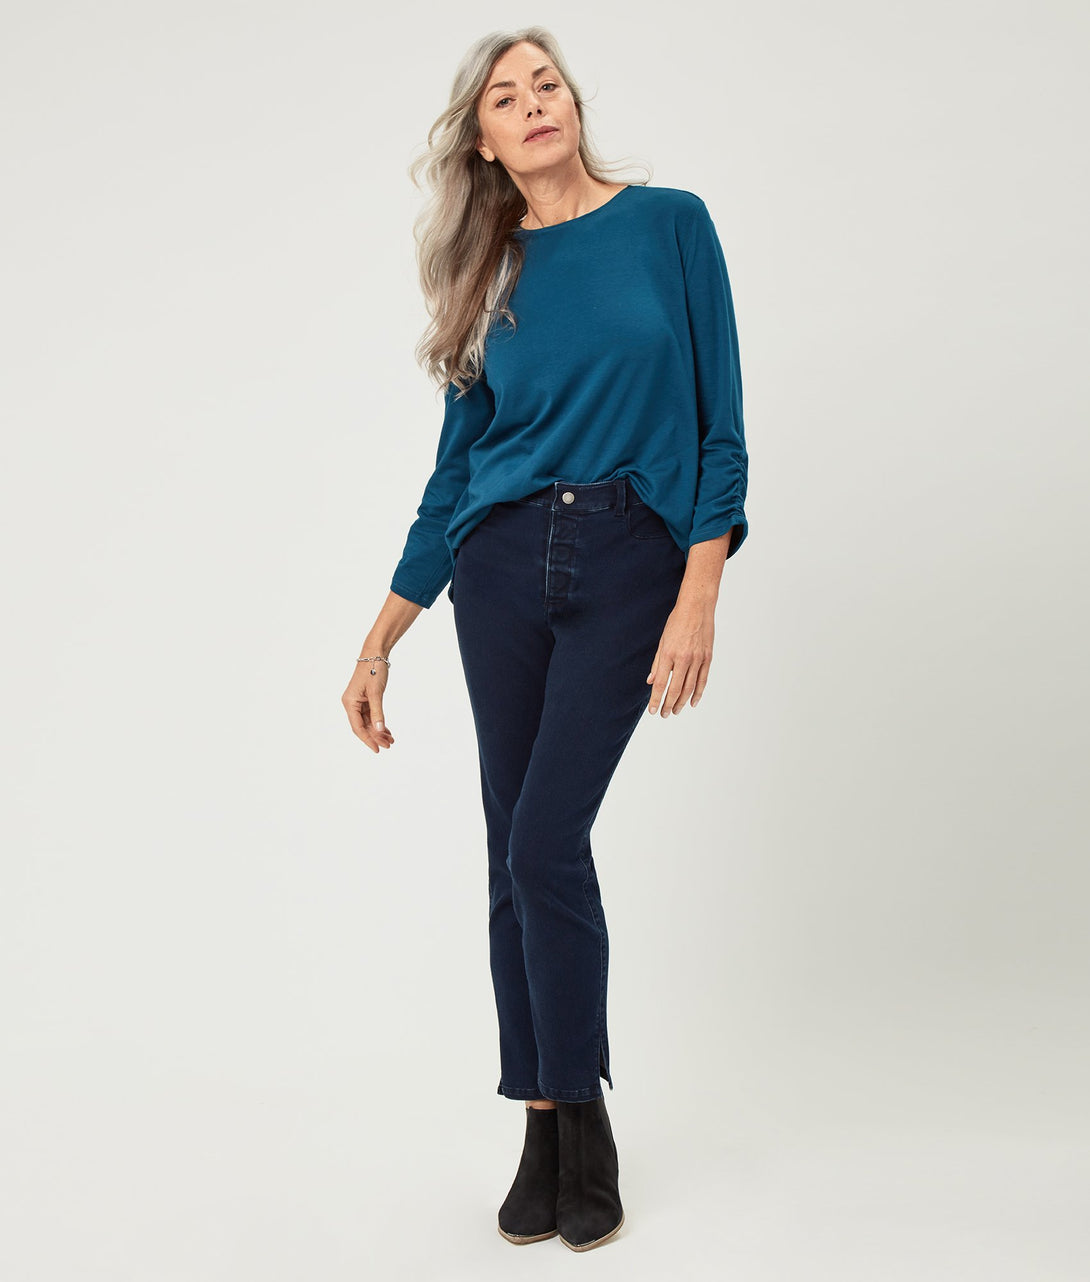 The Kaycee Ultra Stretch Skinny Jean in Dark Indigo Wash